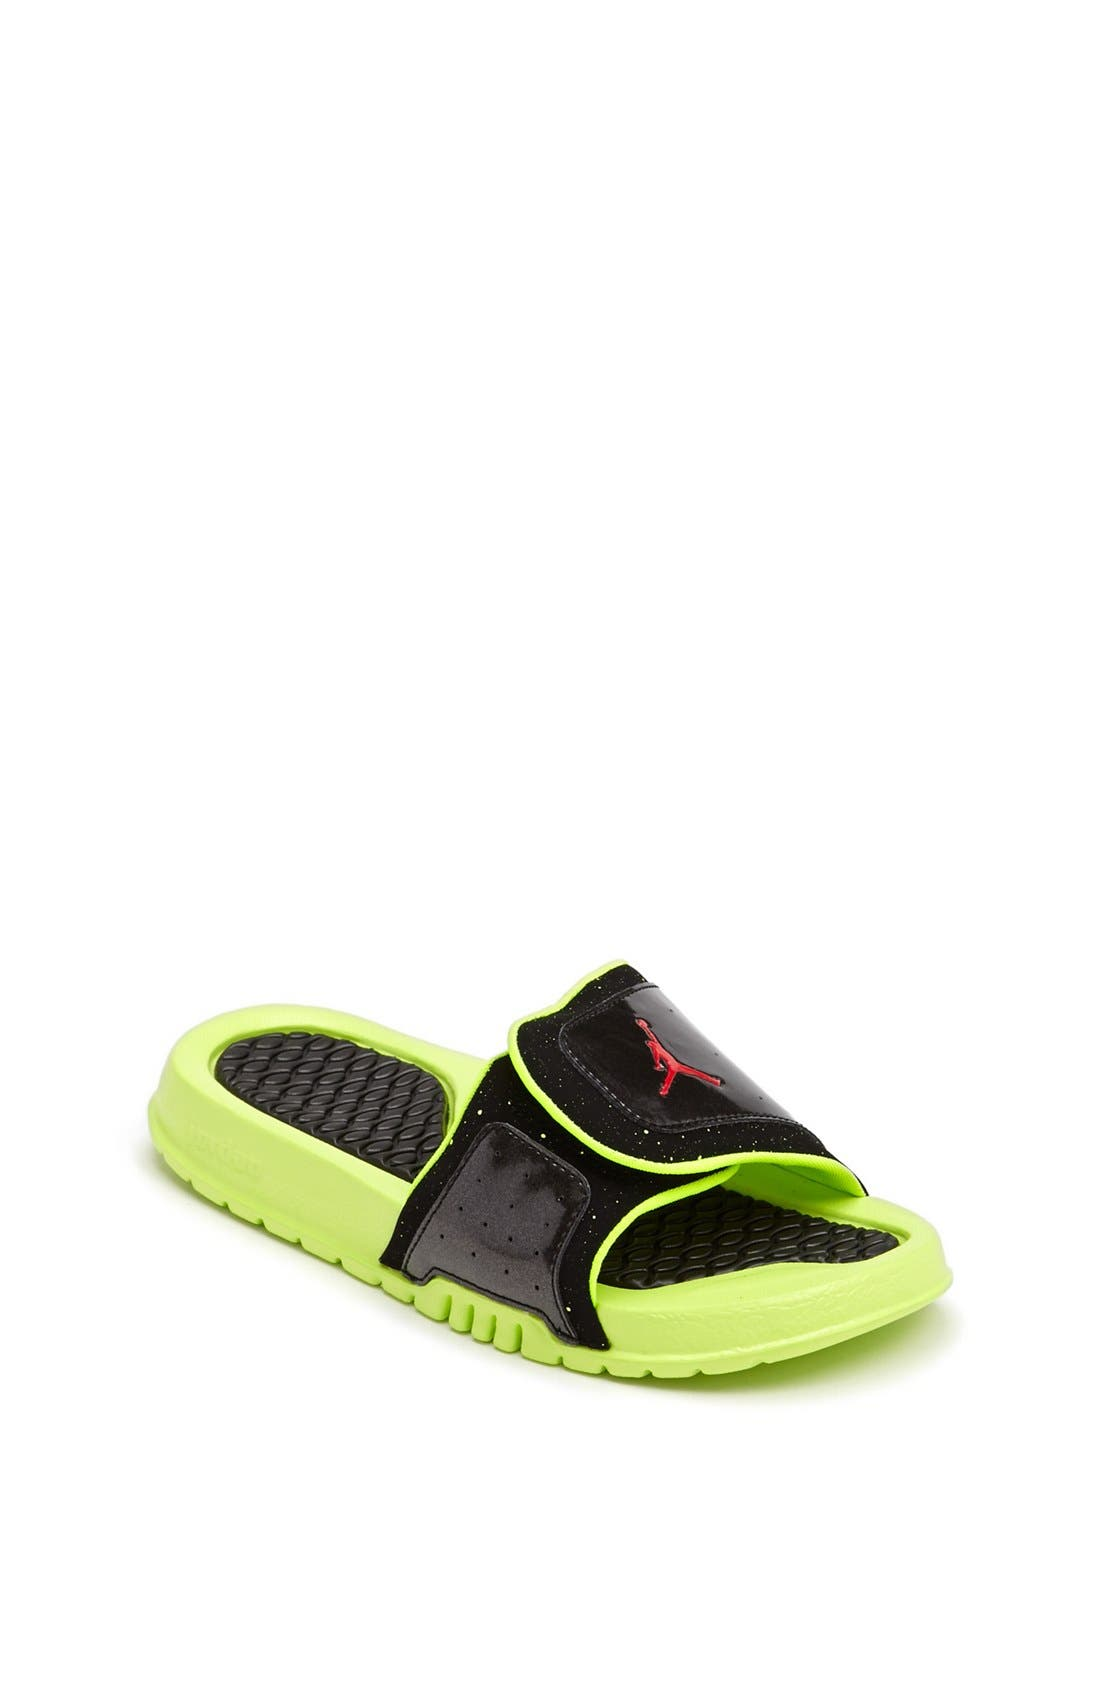 Alternate Image 1 Selected - Nike 'Jordan Hydro II' Sandal (Big Kid)